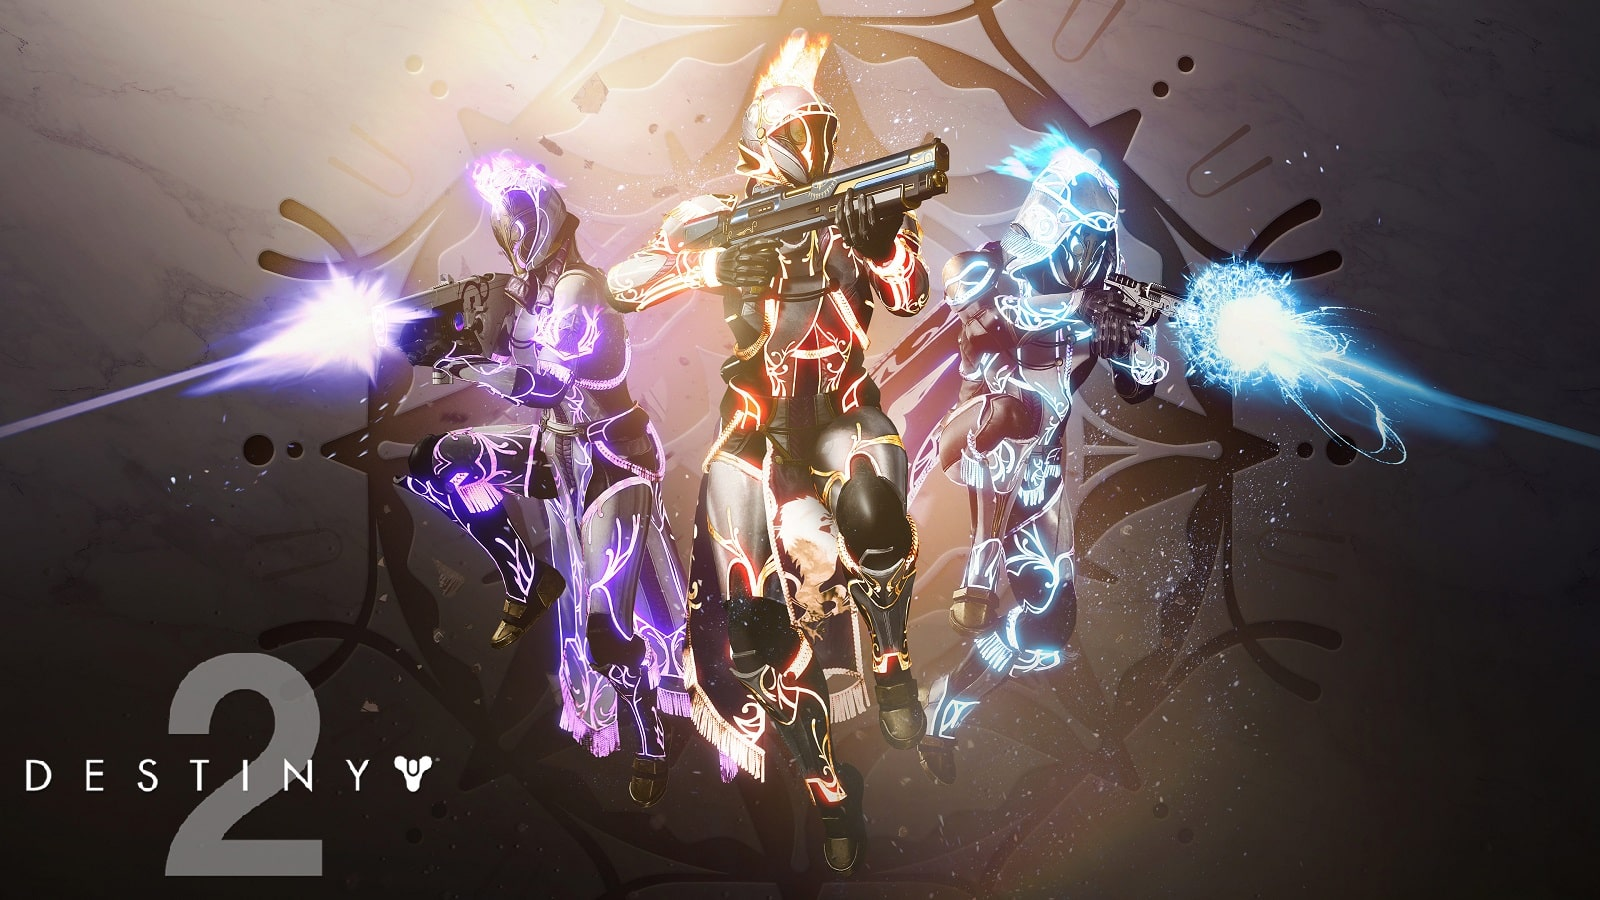 Destiny 2 Solstice of Heroes 2021 guide: EAZ overview, armor upgrades, event rewards - Global Circulate